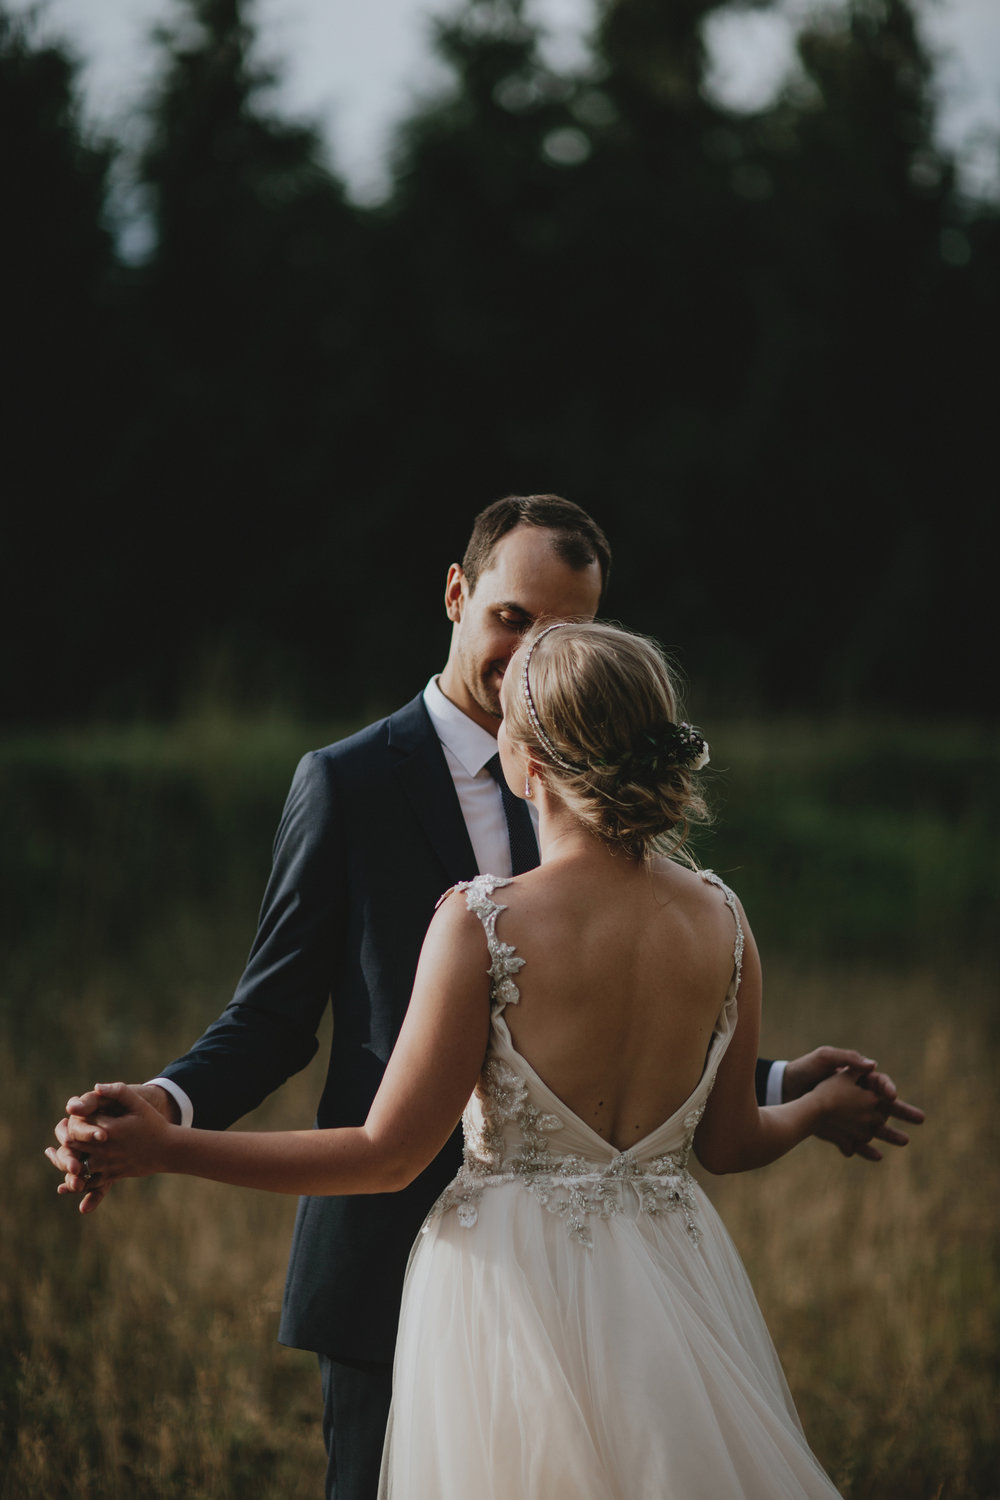 Steph-Jon-Wedding-Preview-5113-Squarespace.jpg